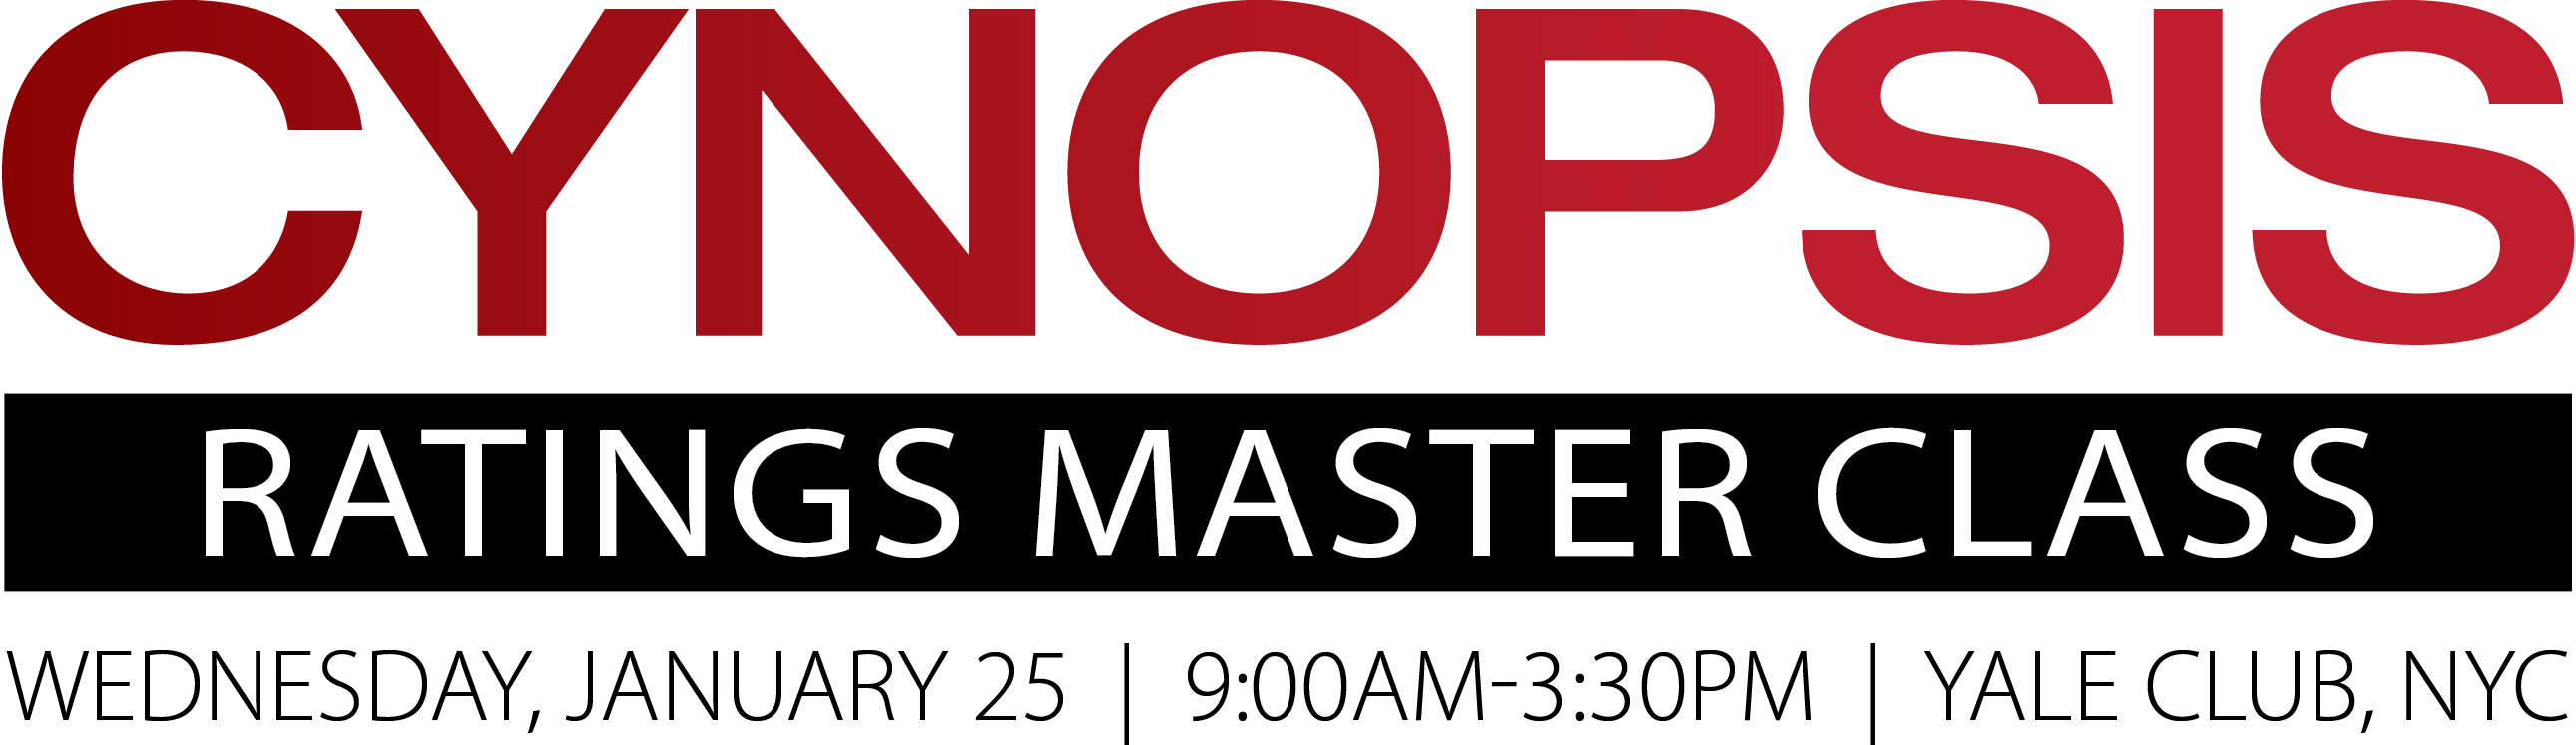 28902 Cynopsis Ratings Master Class_2